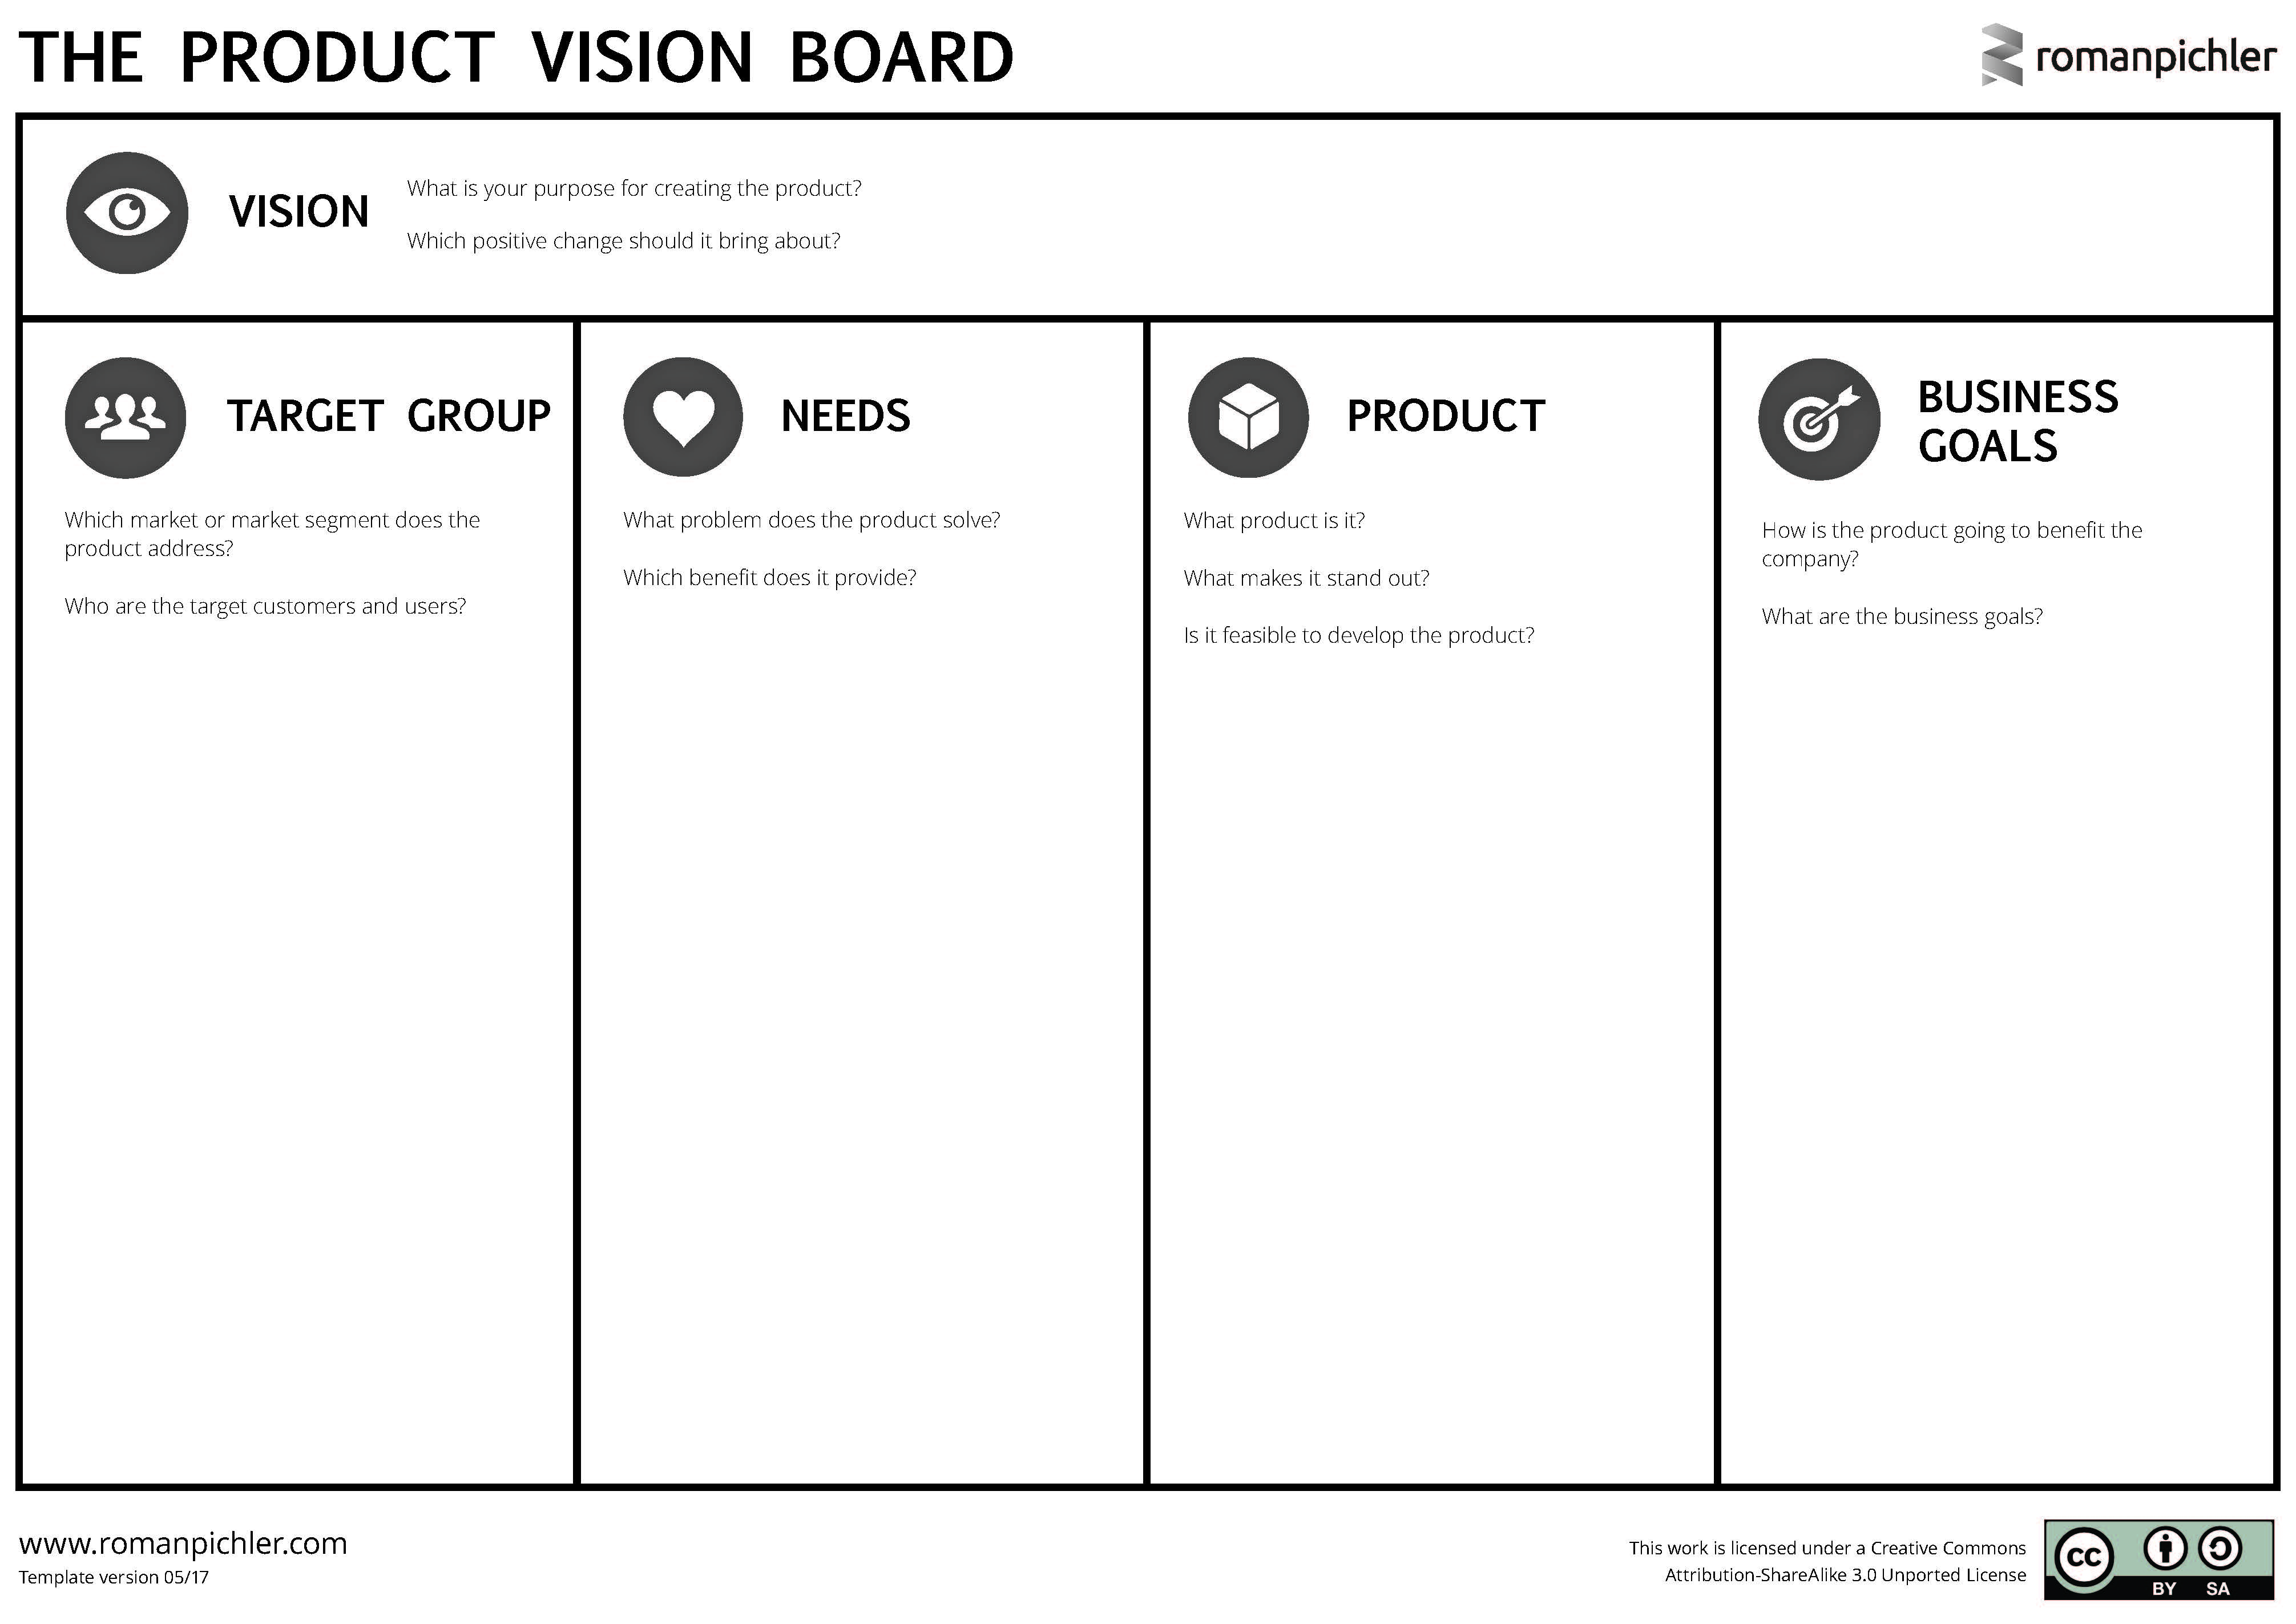 Product Vision Board by Roman Pichler